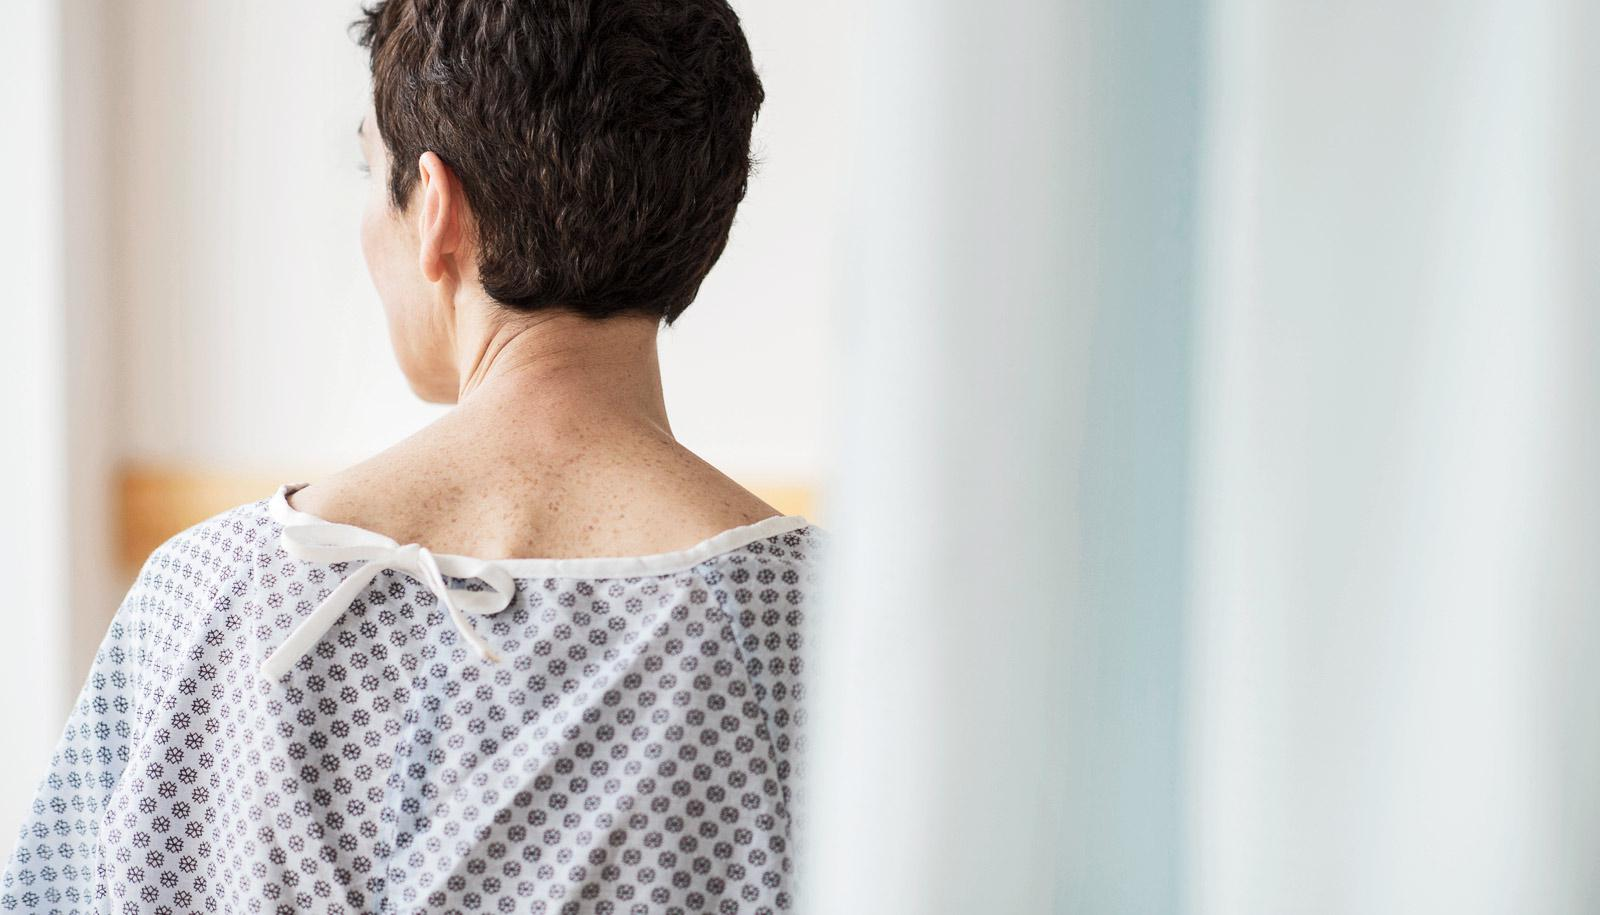 hospital patient in gown facing away